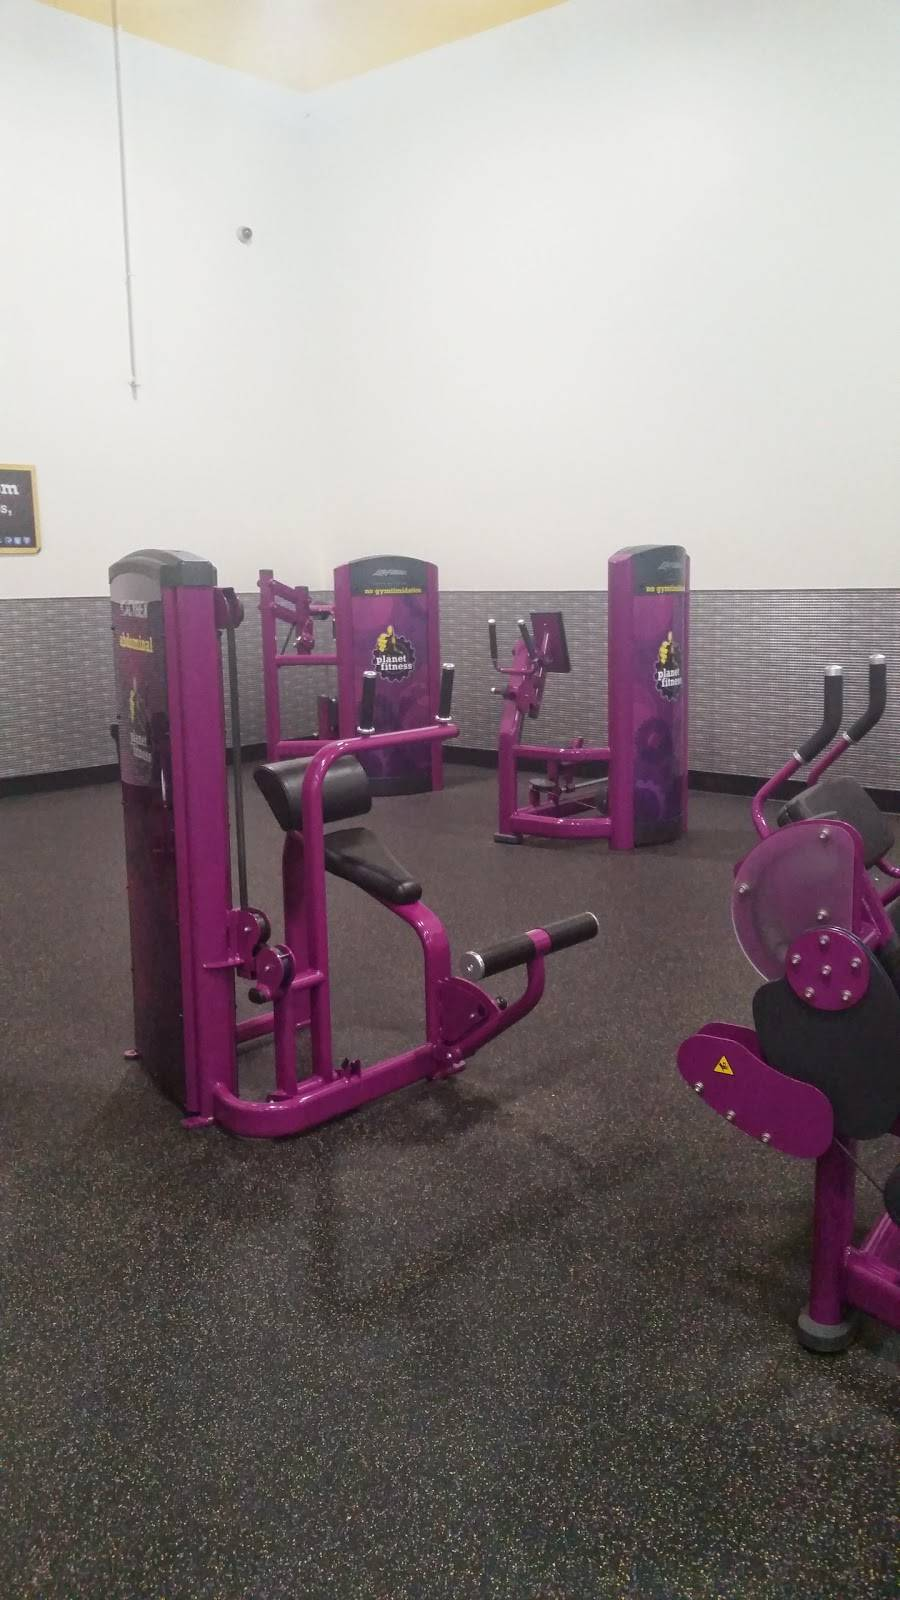 Planet Fitness - gym  | Photo 8 of 8 | Address: 60 Coon Rapids Blvd NW, Coon Rapids, MN 55448, USA | Phone: (763) 784-7677